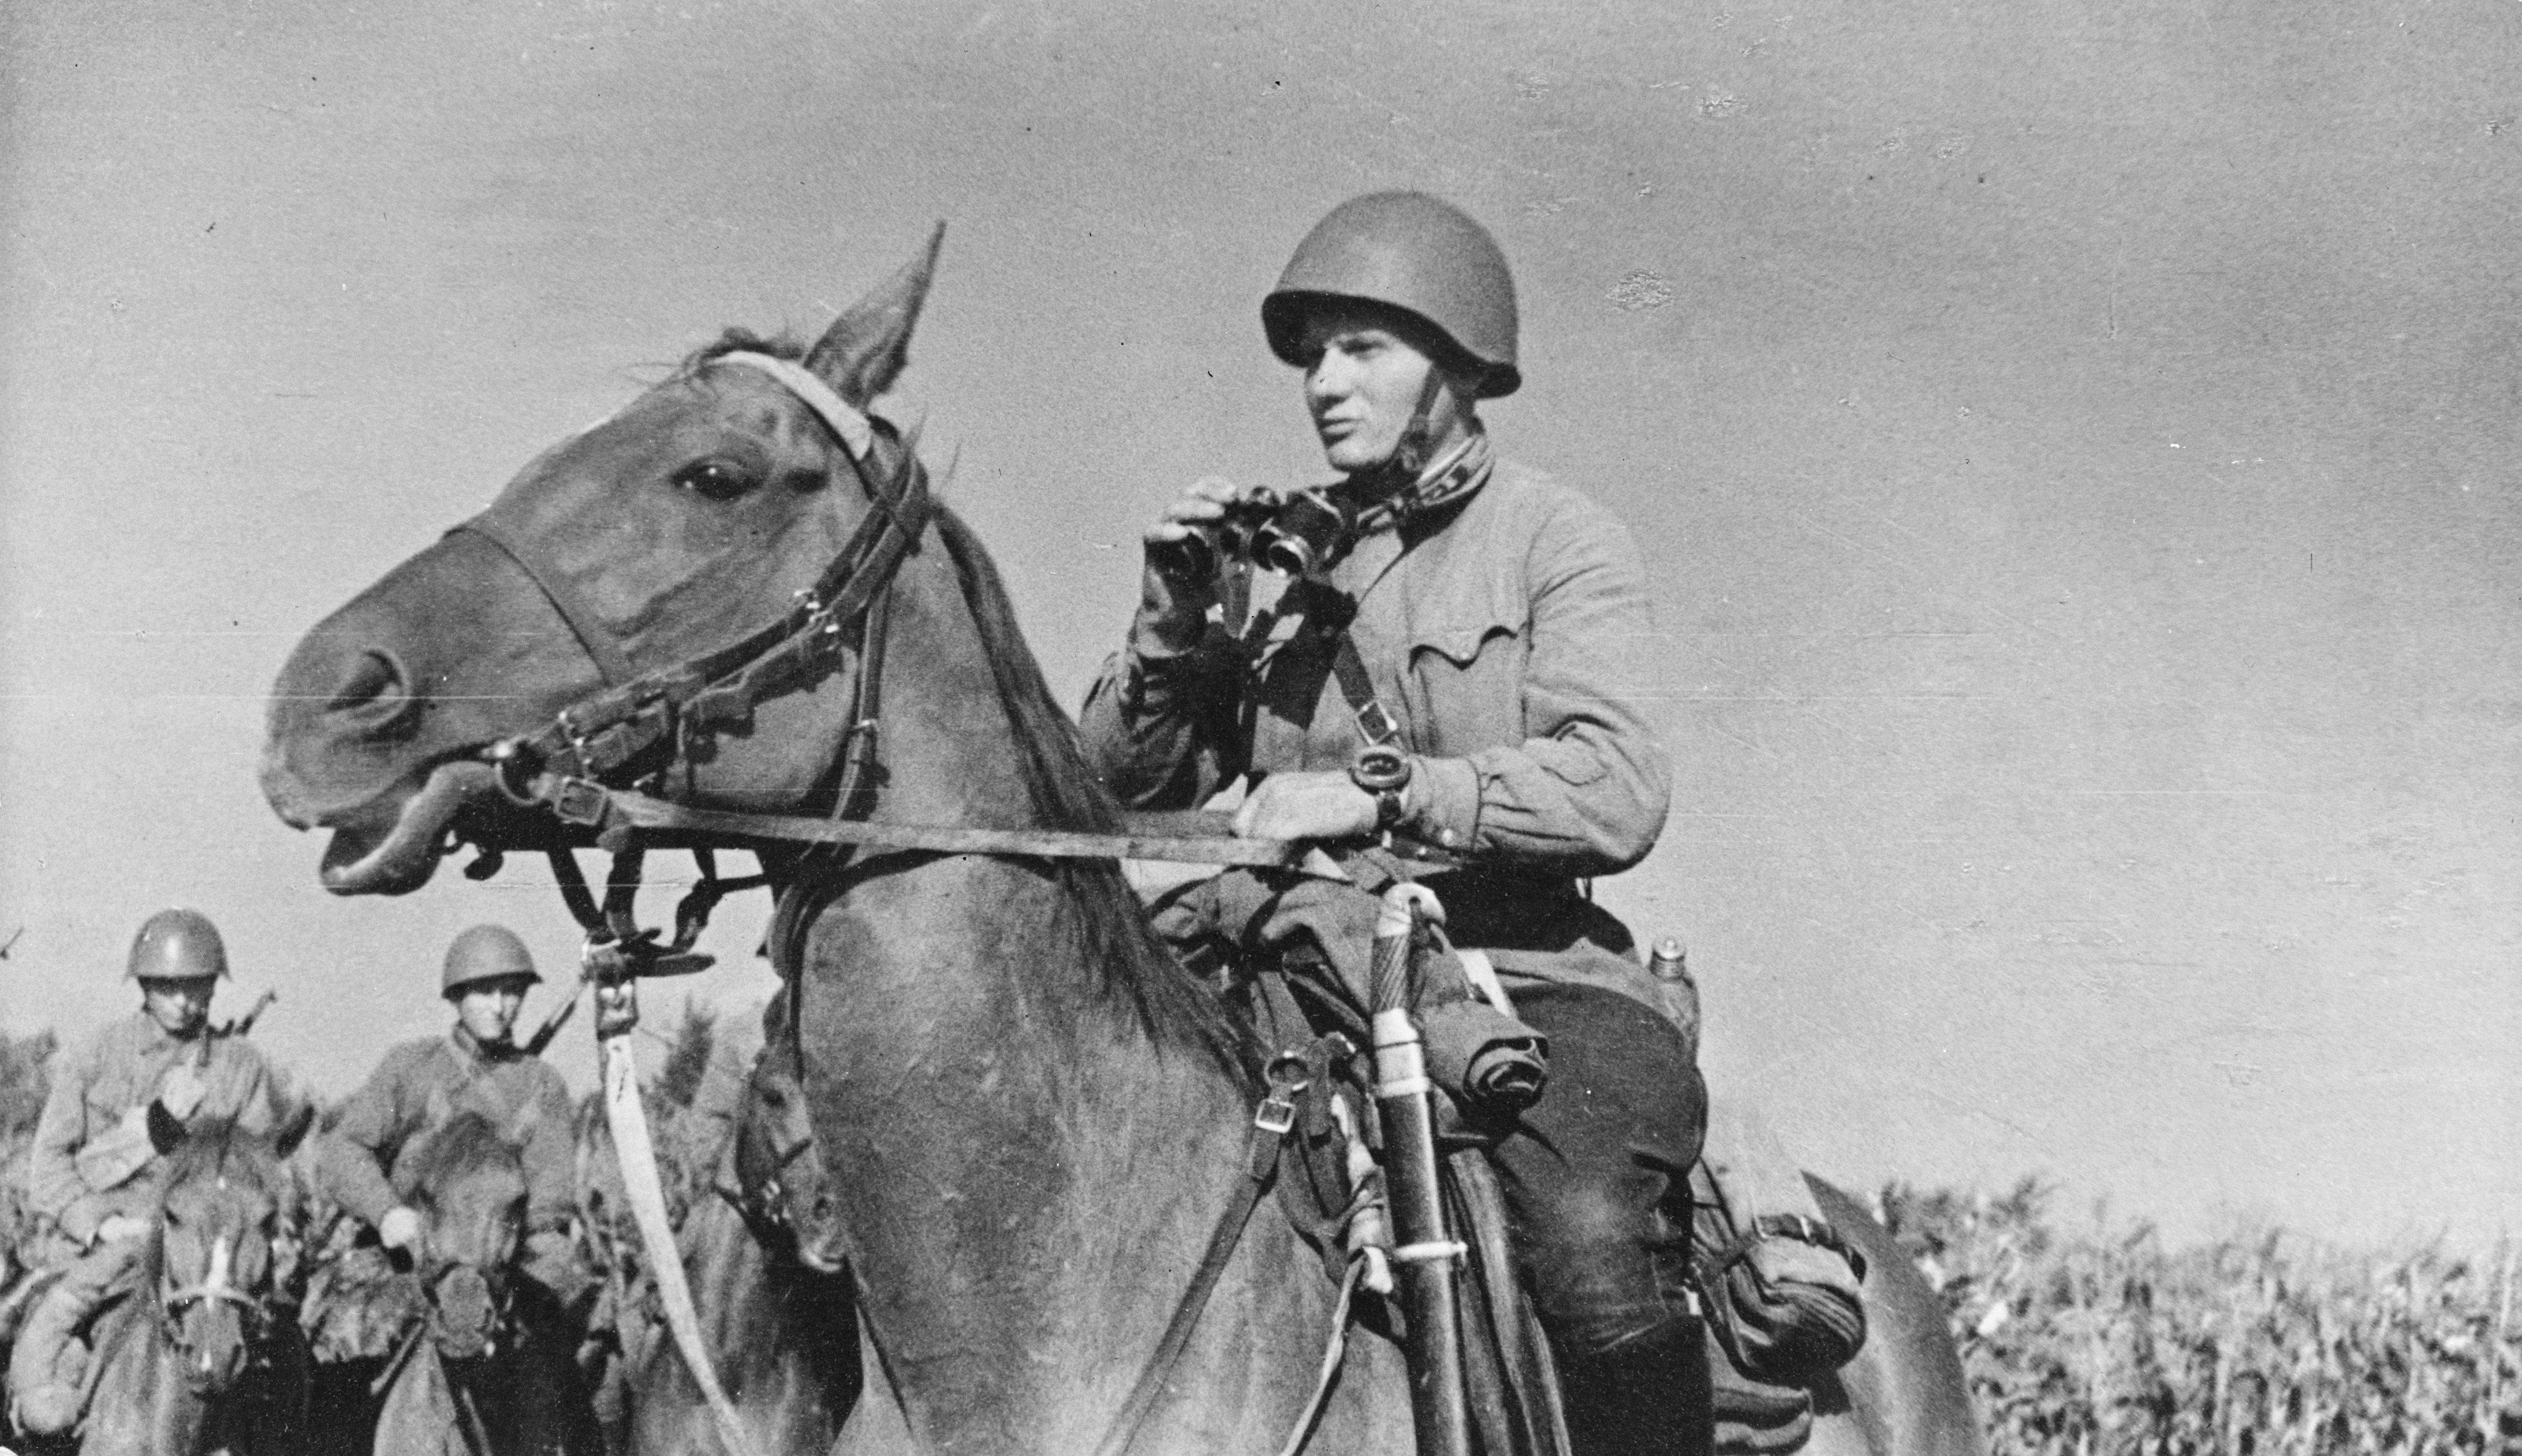 Soviet cavalry ready for action. Note the lieutenant's sword hanging from the saddle and his high impact wrist watch. Pin by Paolo Marzioli